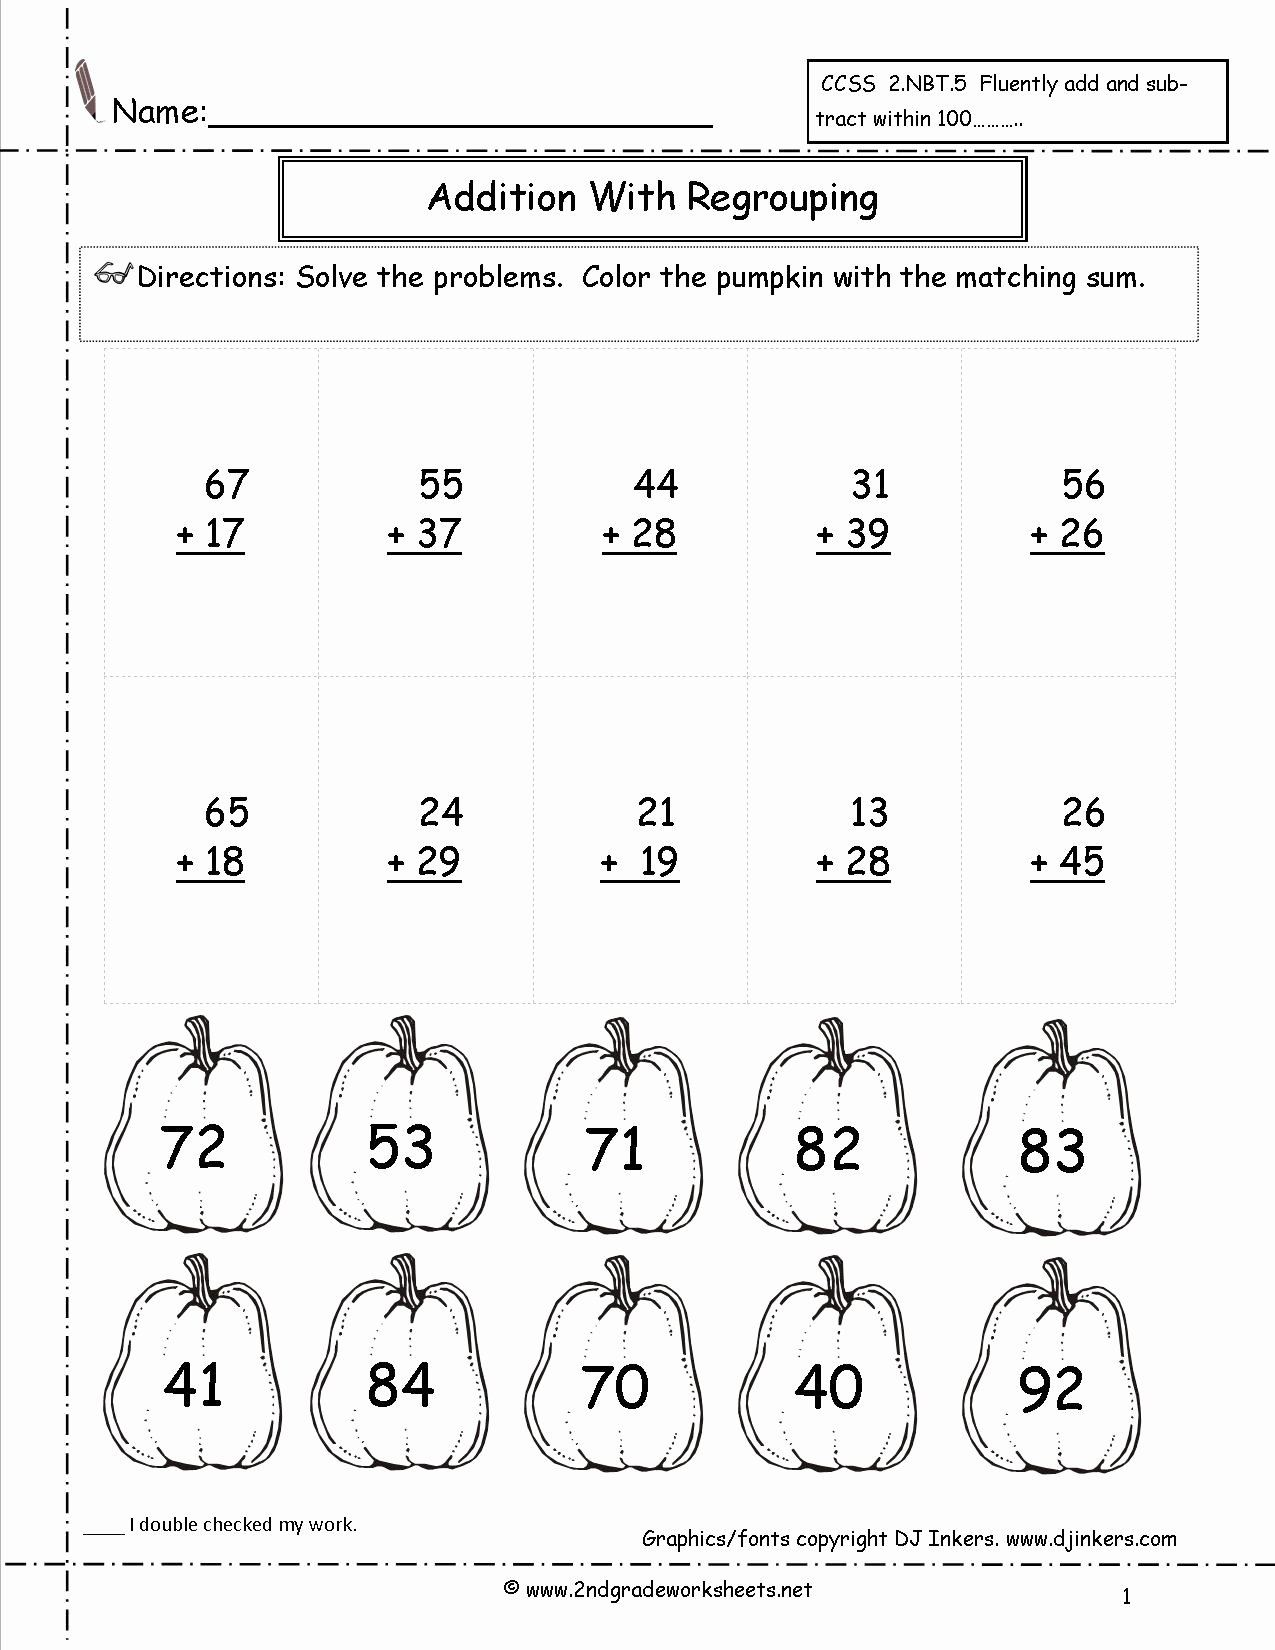 Halloween Worksheets for 2nd Grade Printable Division Questions Year 3 English Basic Vocabulary